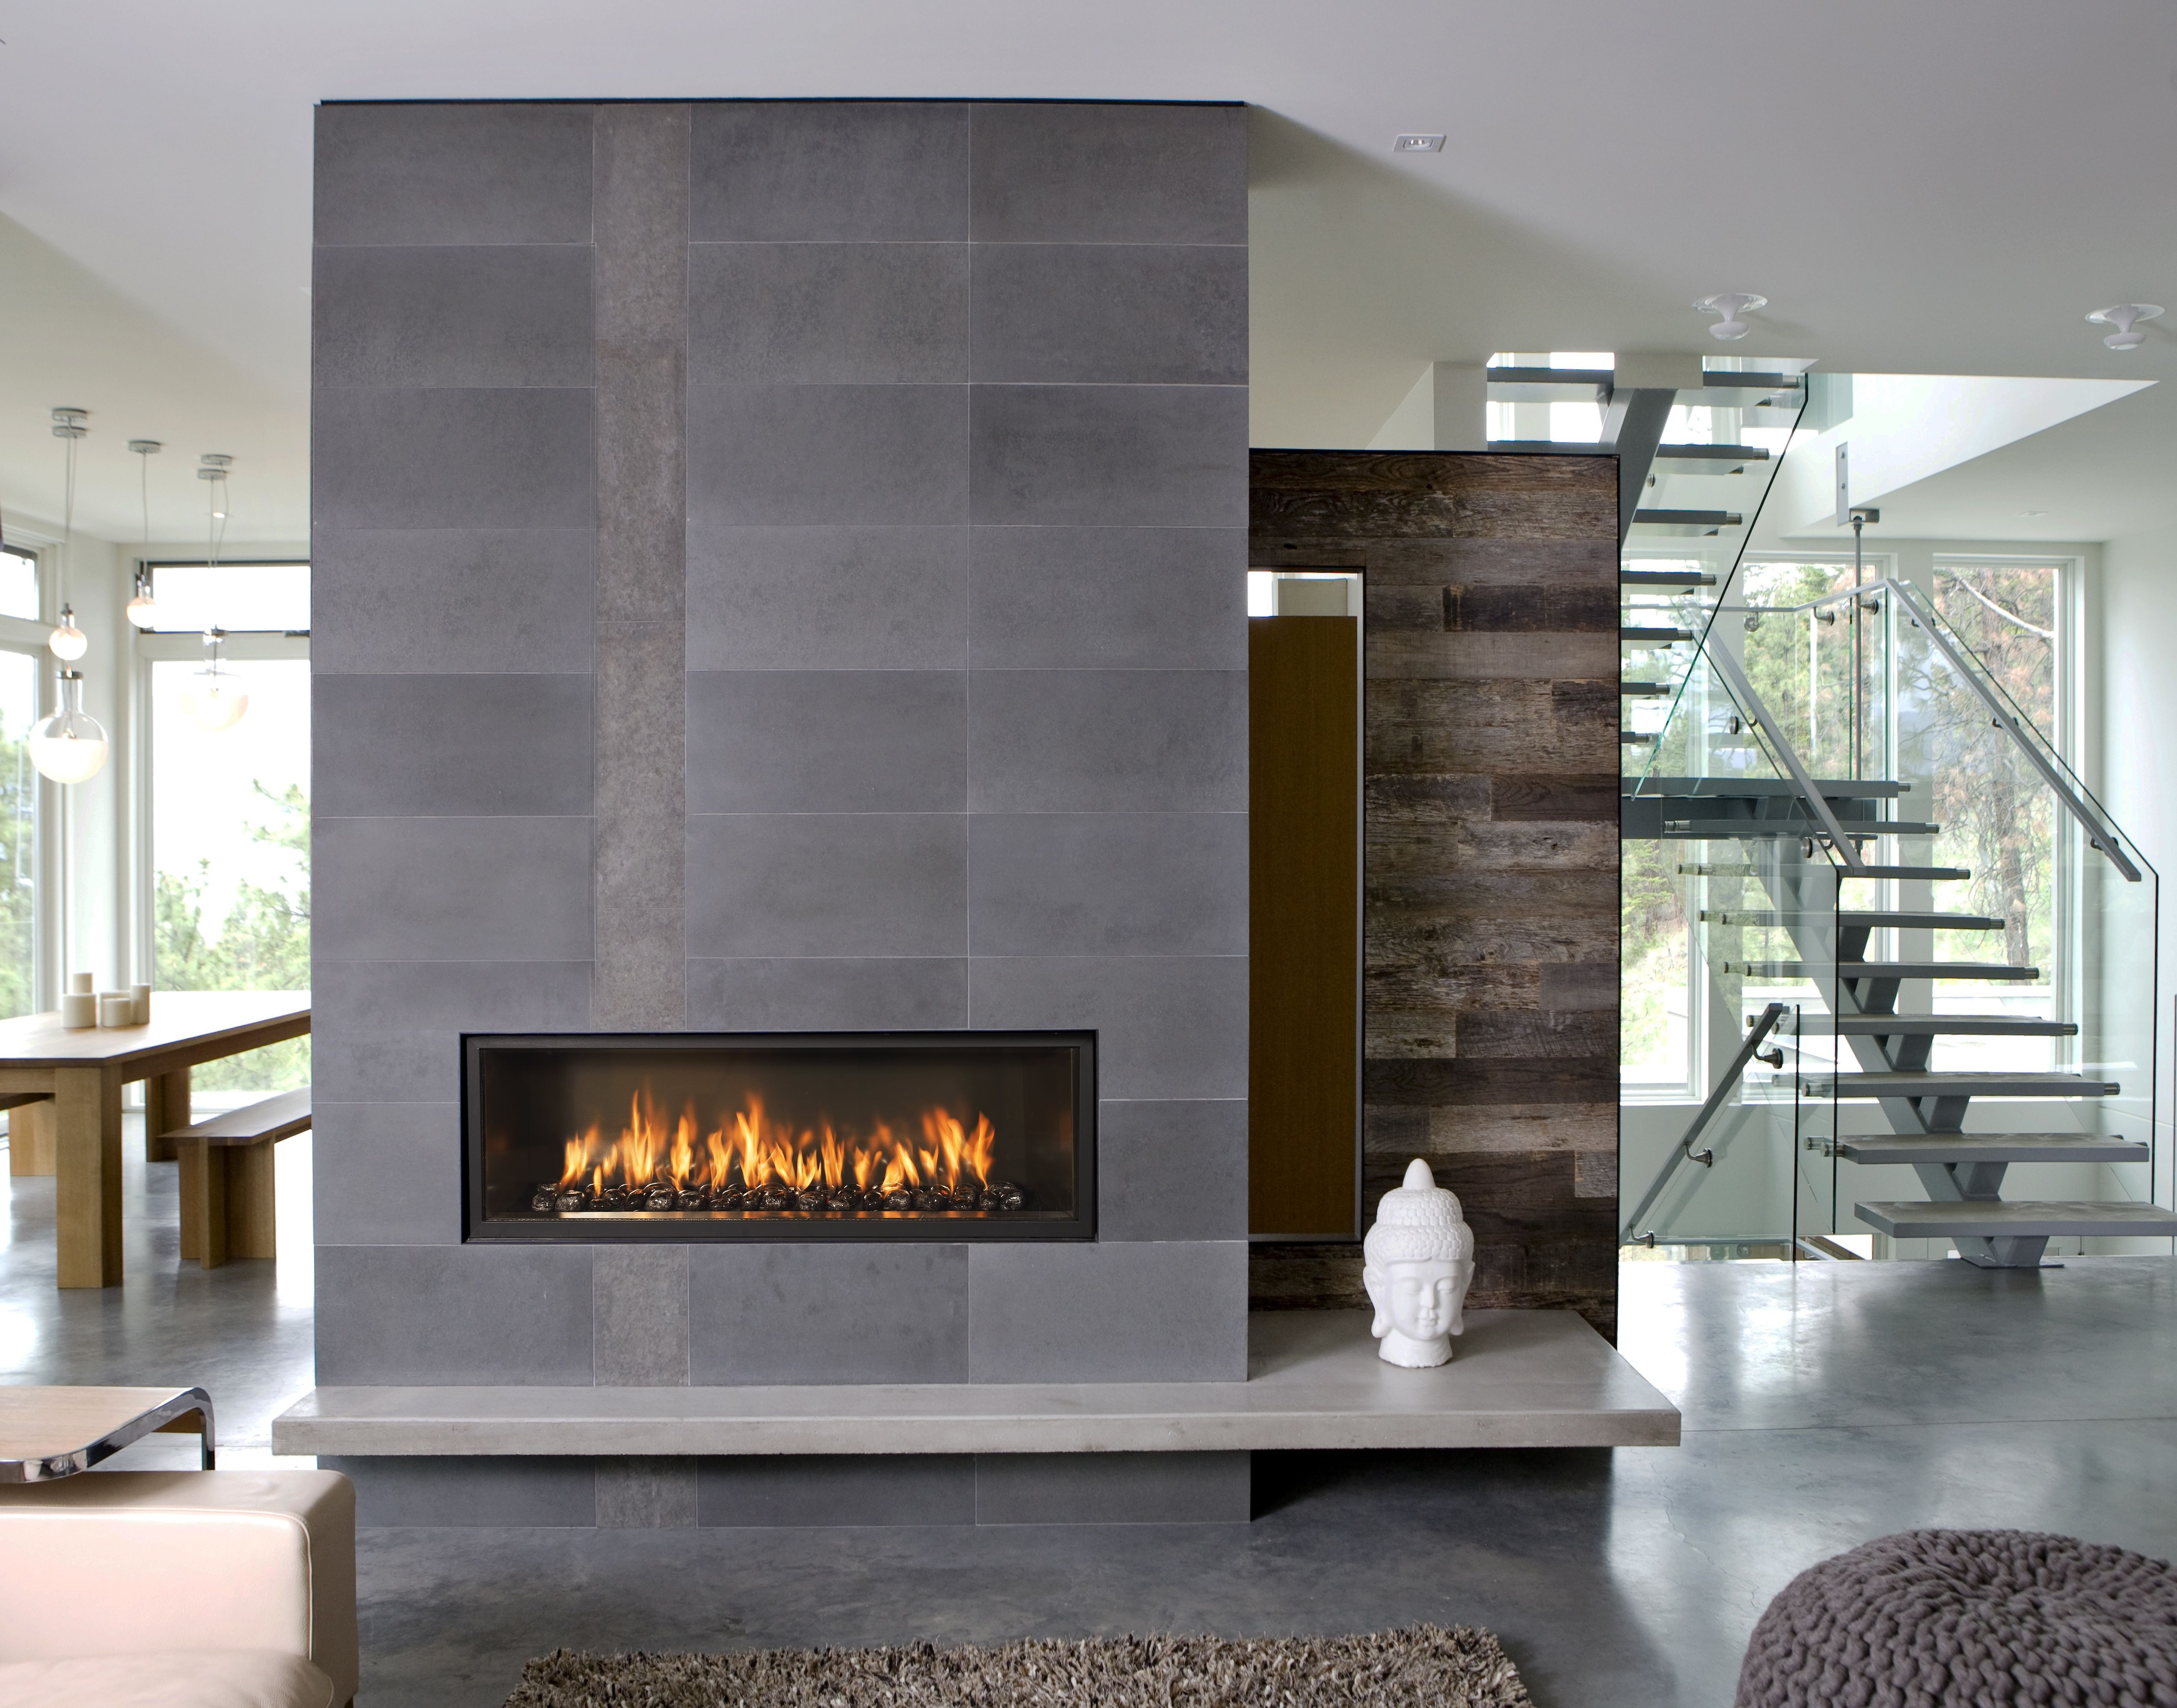 Industrial Home Slate Gray Reclaimed Wood Modern Fireplace Mantel Ideas Living Wall